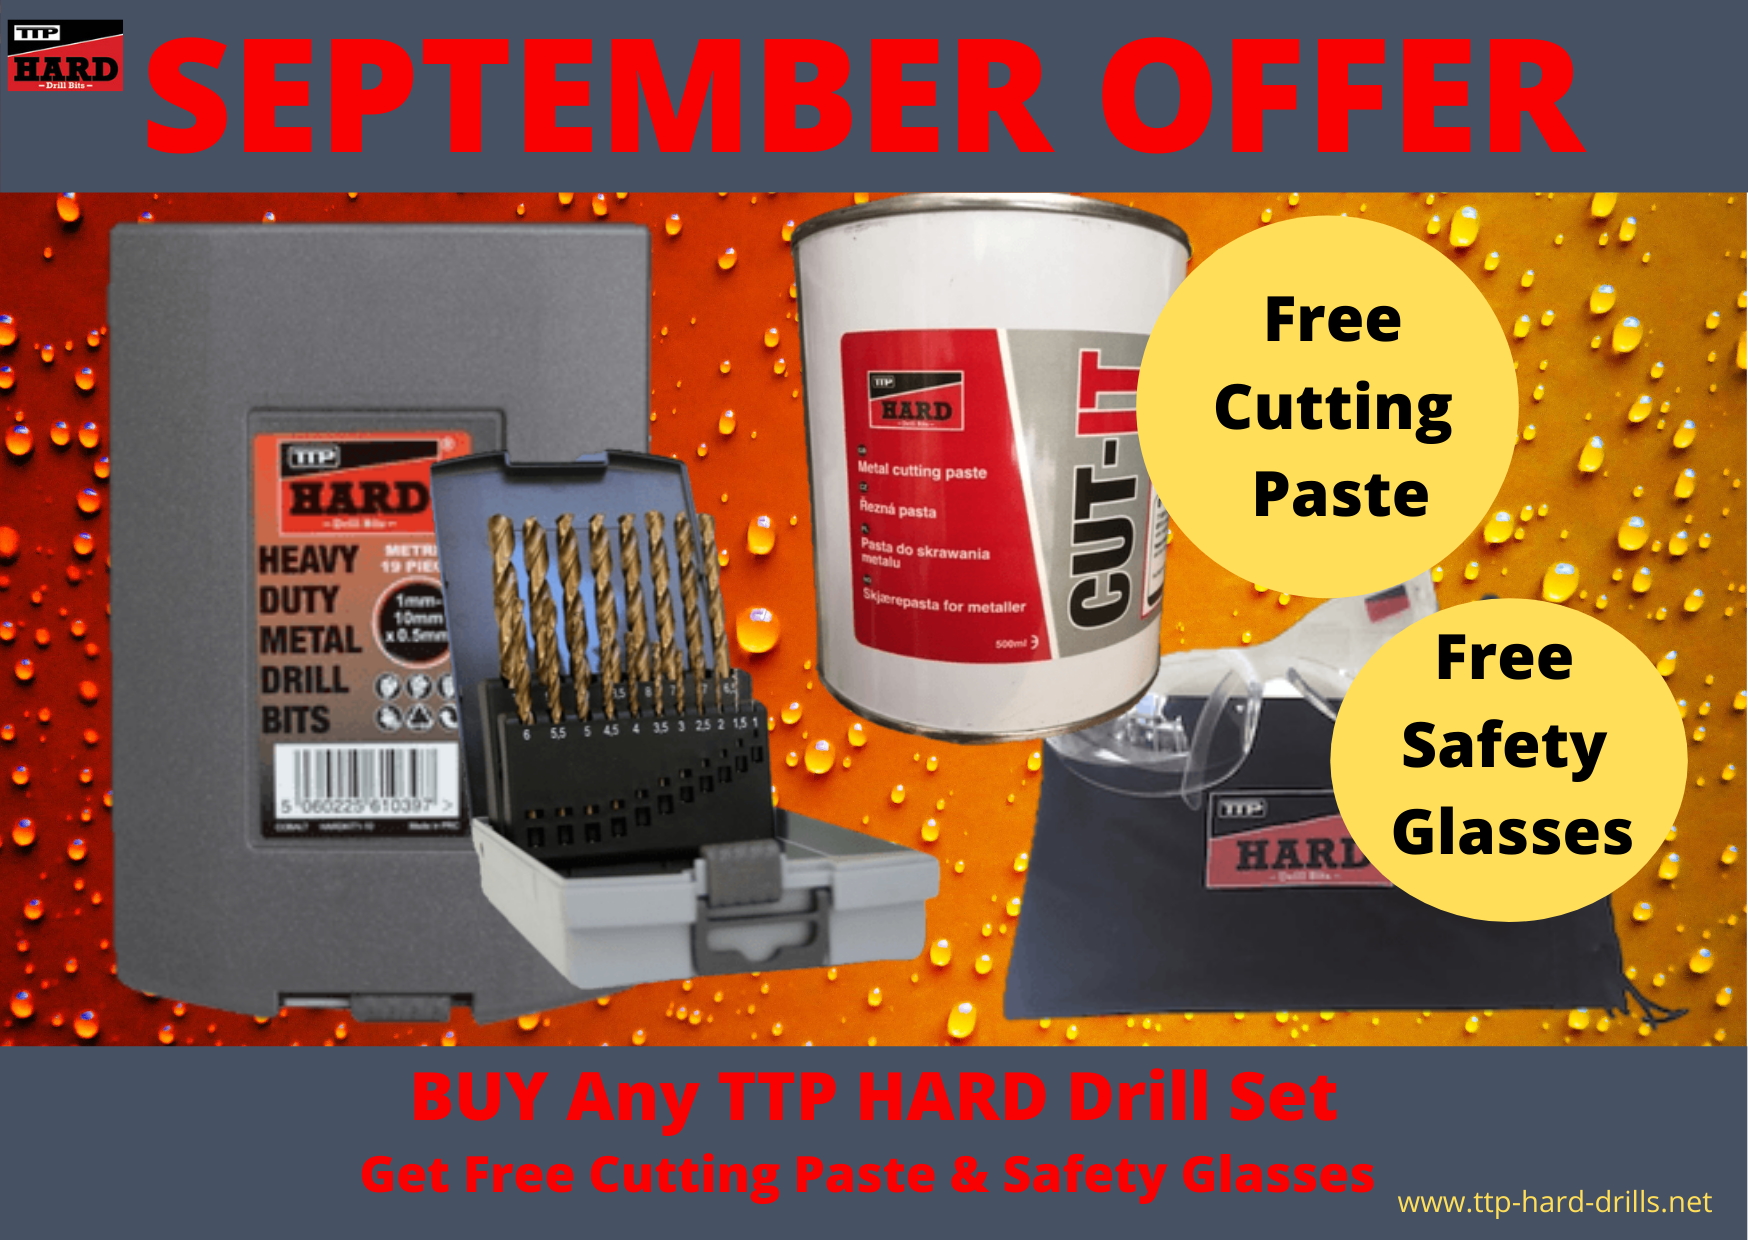 Special offer for September Buy any drill kit and receive a free tub of cutting paste and free safety glasses